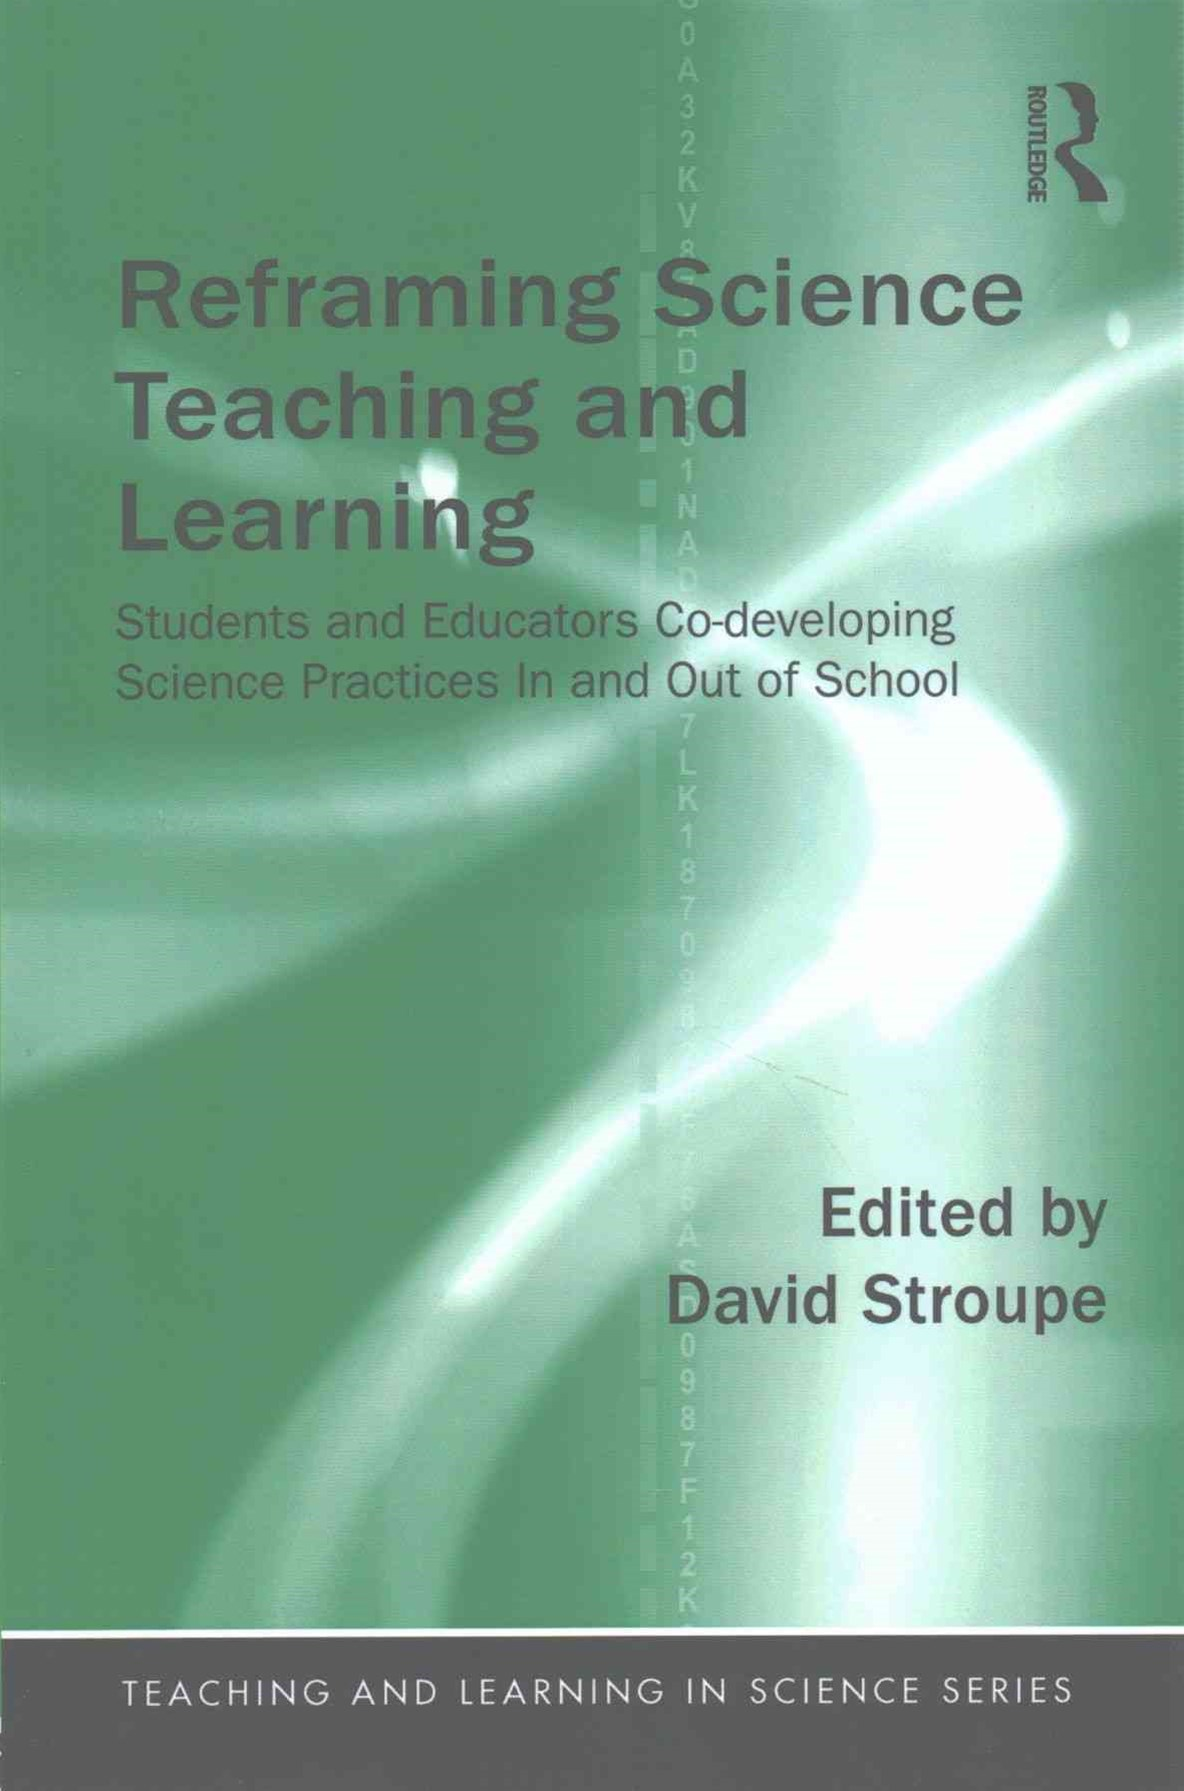 Reframing Science Teaching and Learning